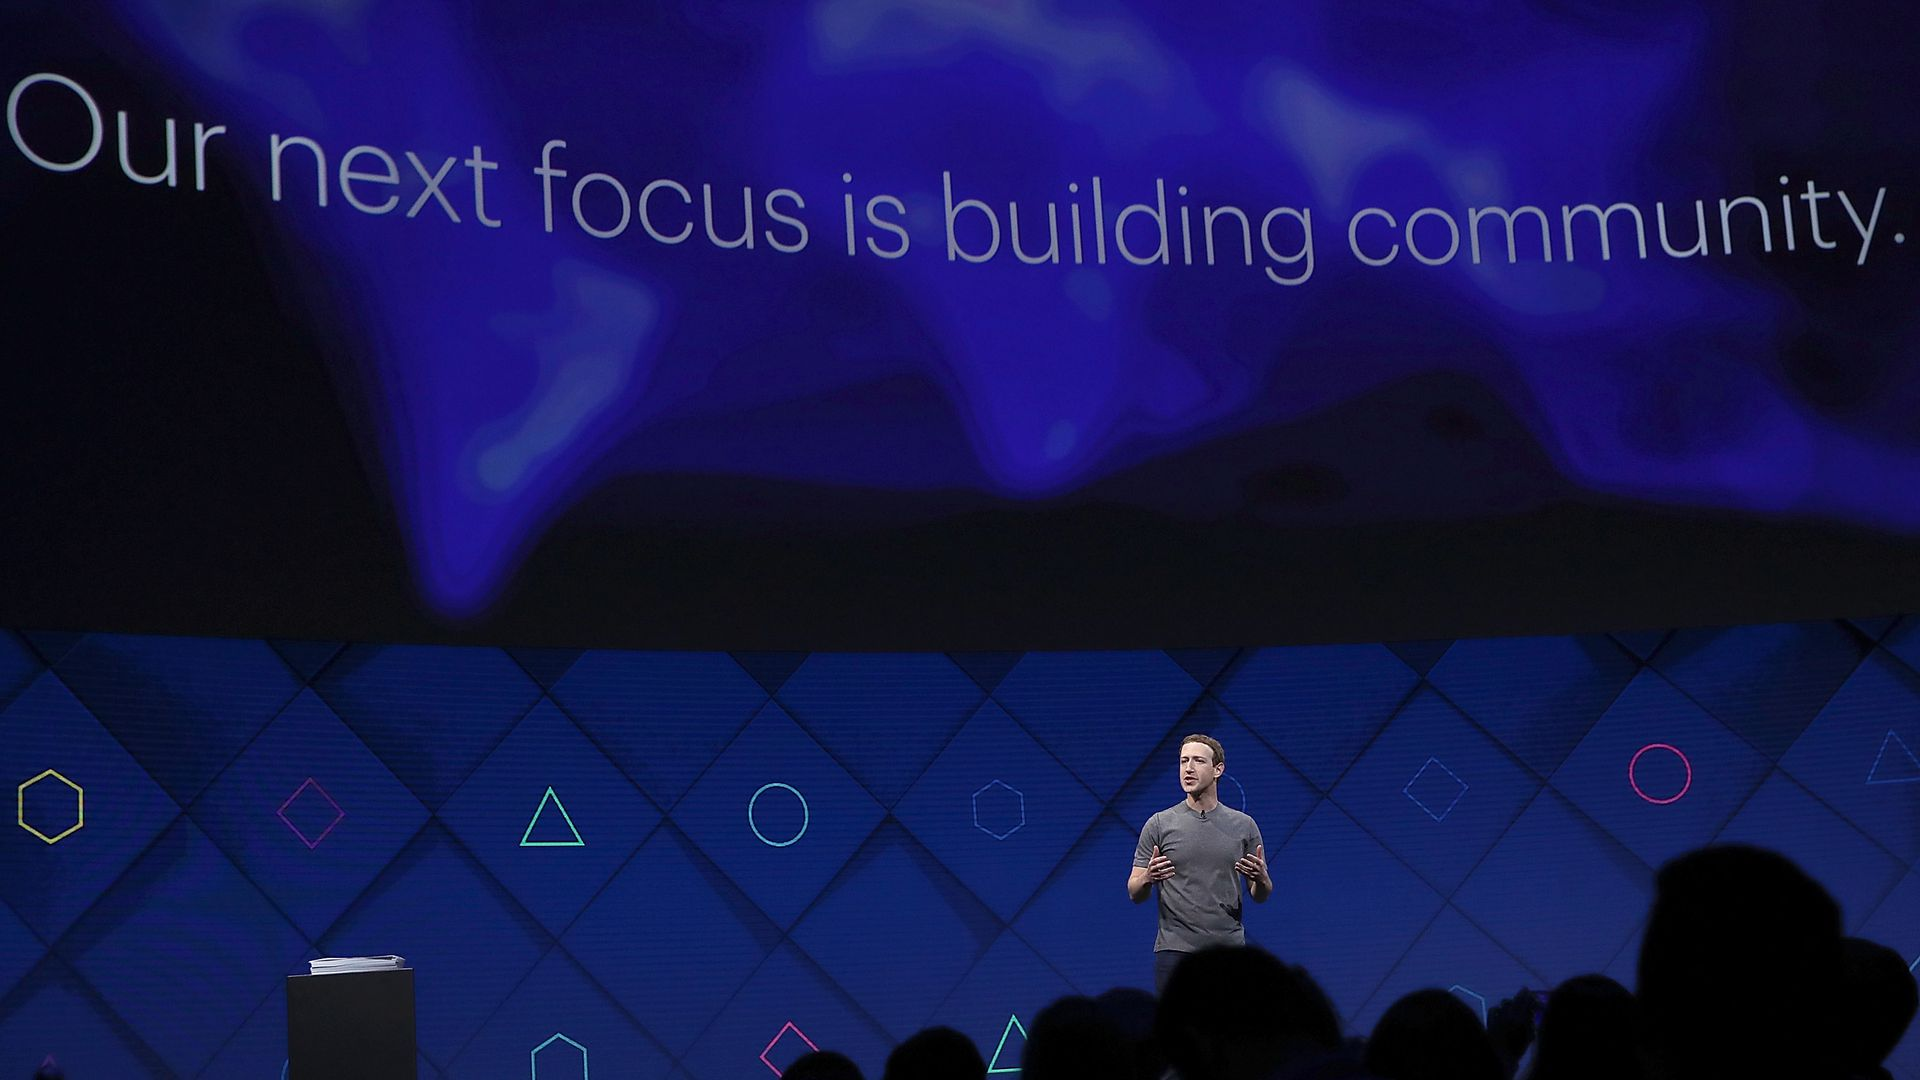 Mark Zuckerberg onstage at Facebook's conference